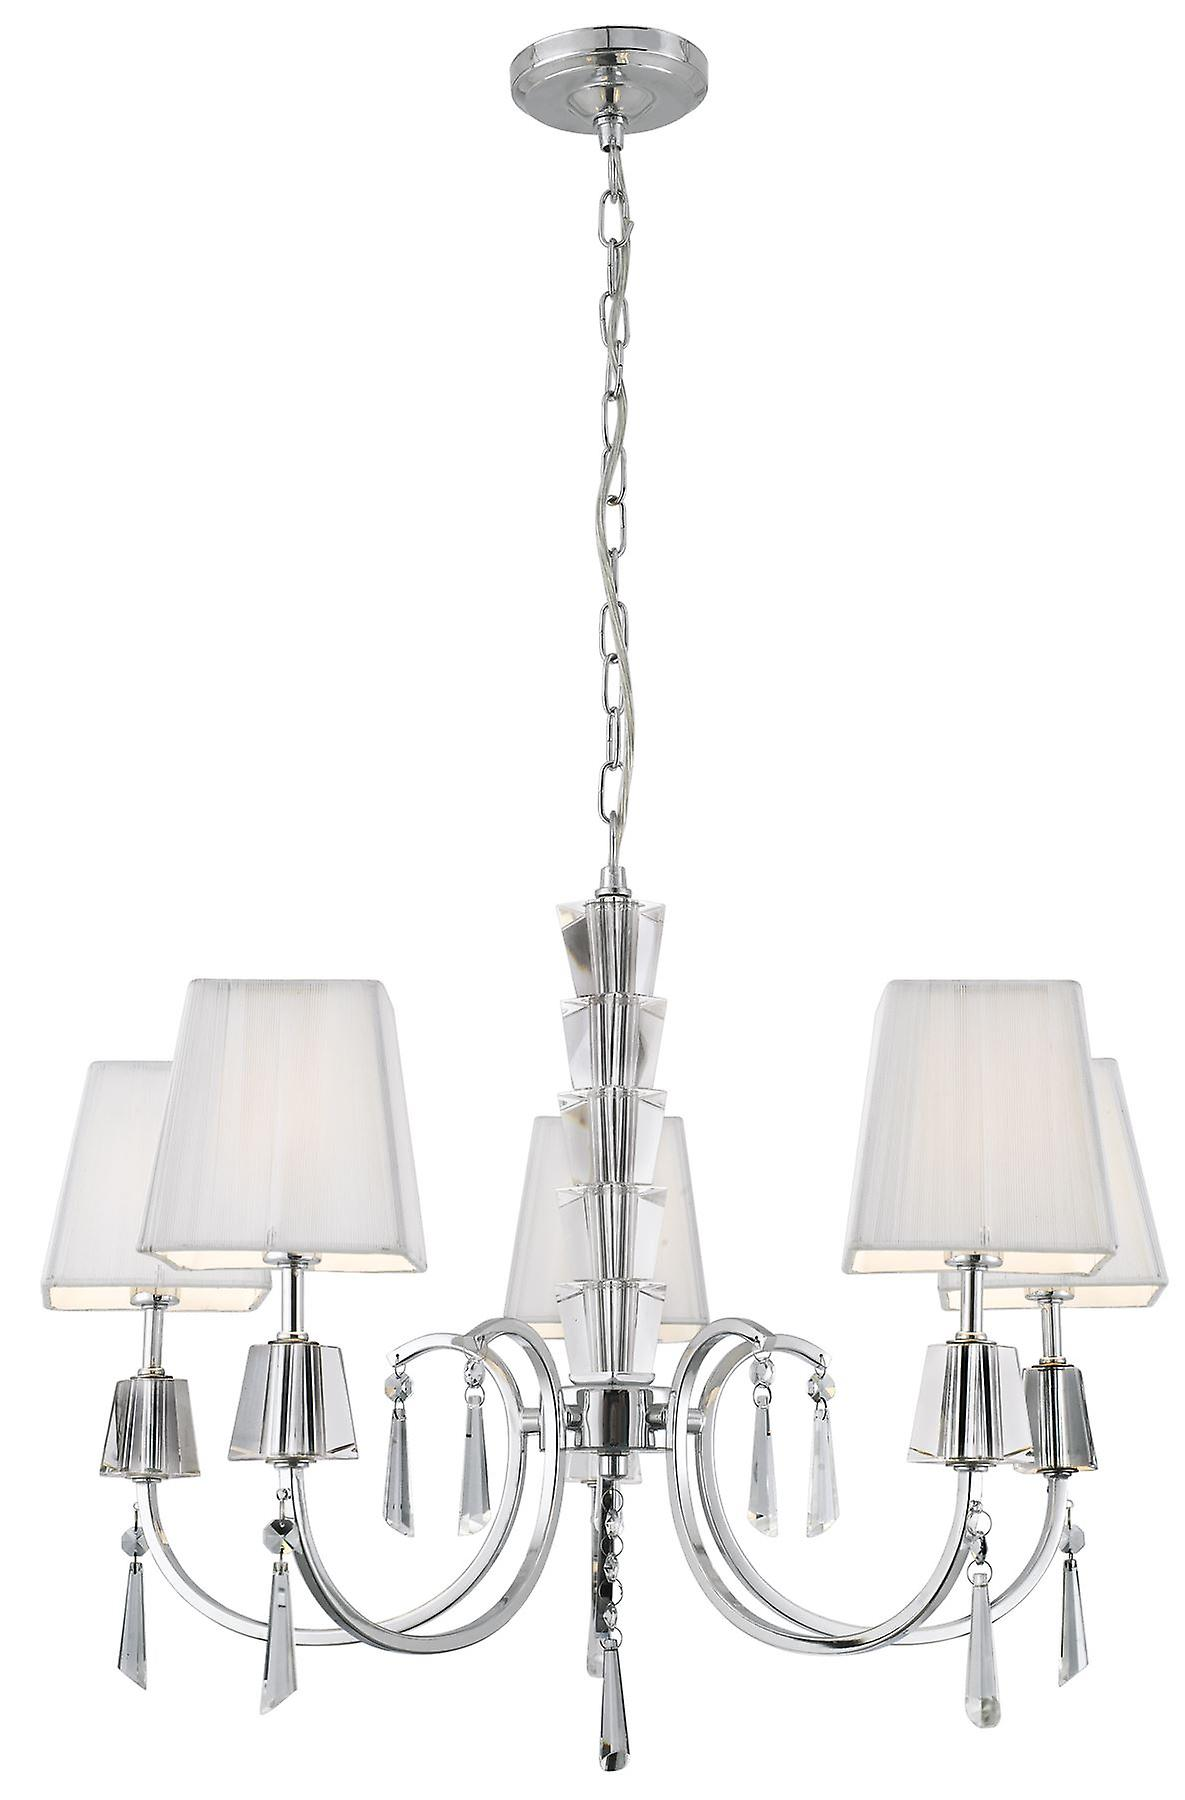 Portico Chrome With Glass And Crystal Five Light Ceiling Light With Shades - Searchlight 6885-5CC